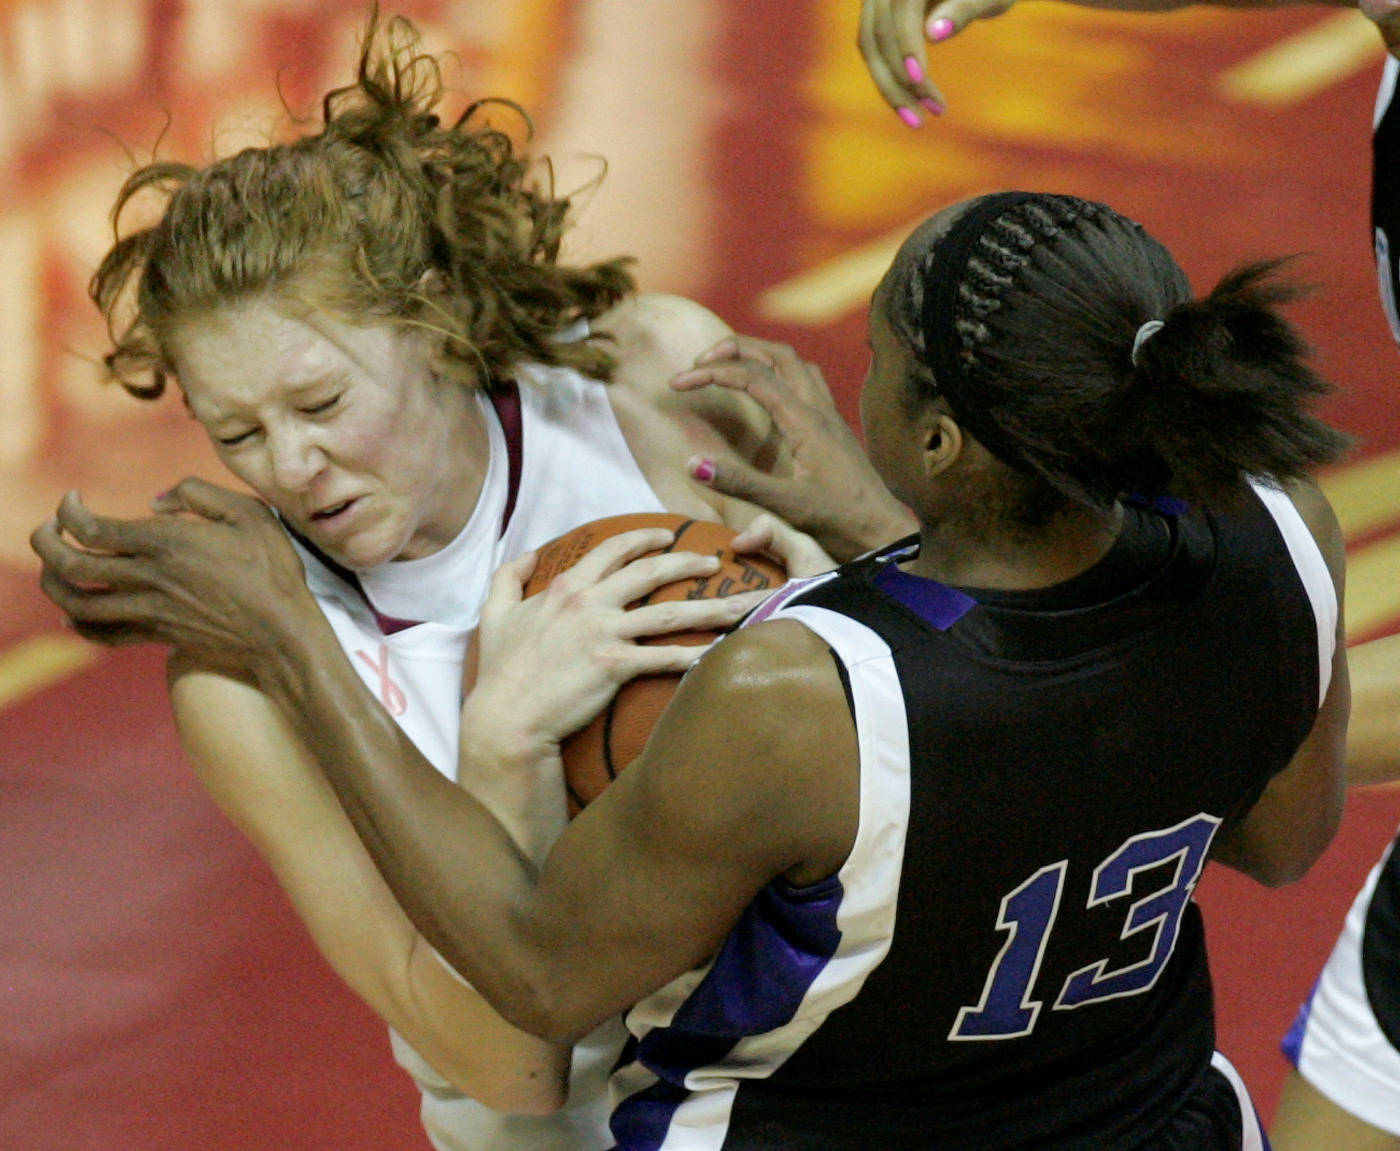 Florida State's Mara Freshour, left, and Duke's Karima Christmas battle for a second-half rebound during an NCAA college basketball game, Thursday, Jan. 29, 2009, in Tallahassee, Fla. Florida State won in overtime 82-75. (AP Photo/Phil Coale)